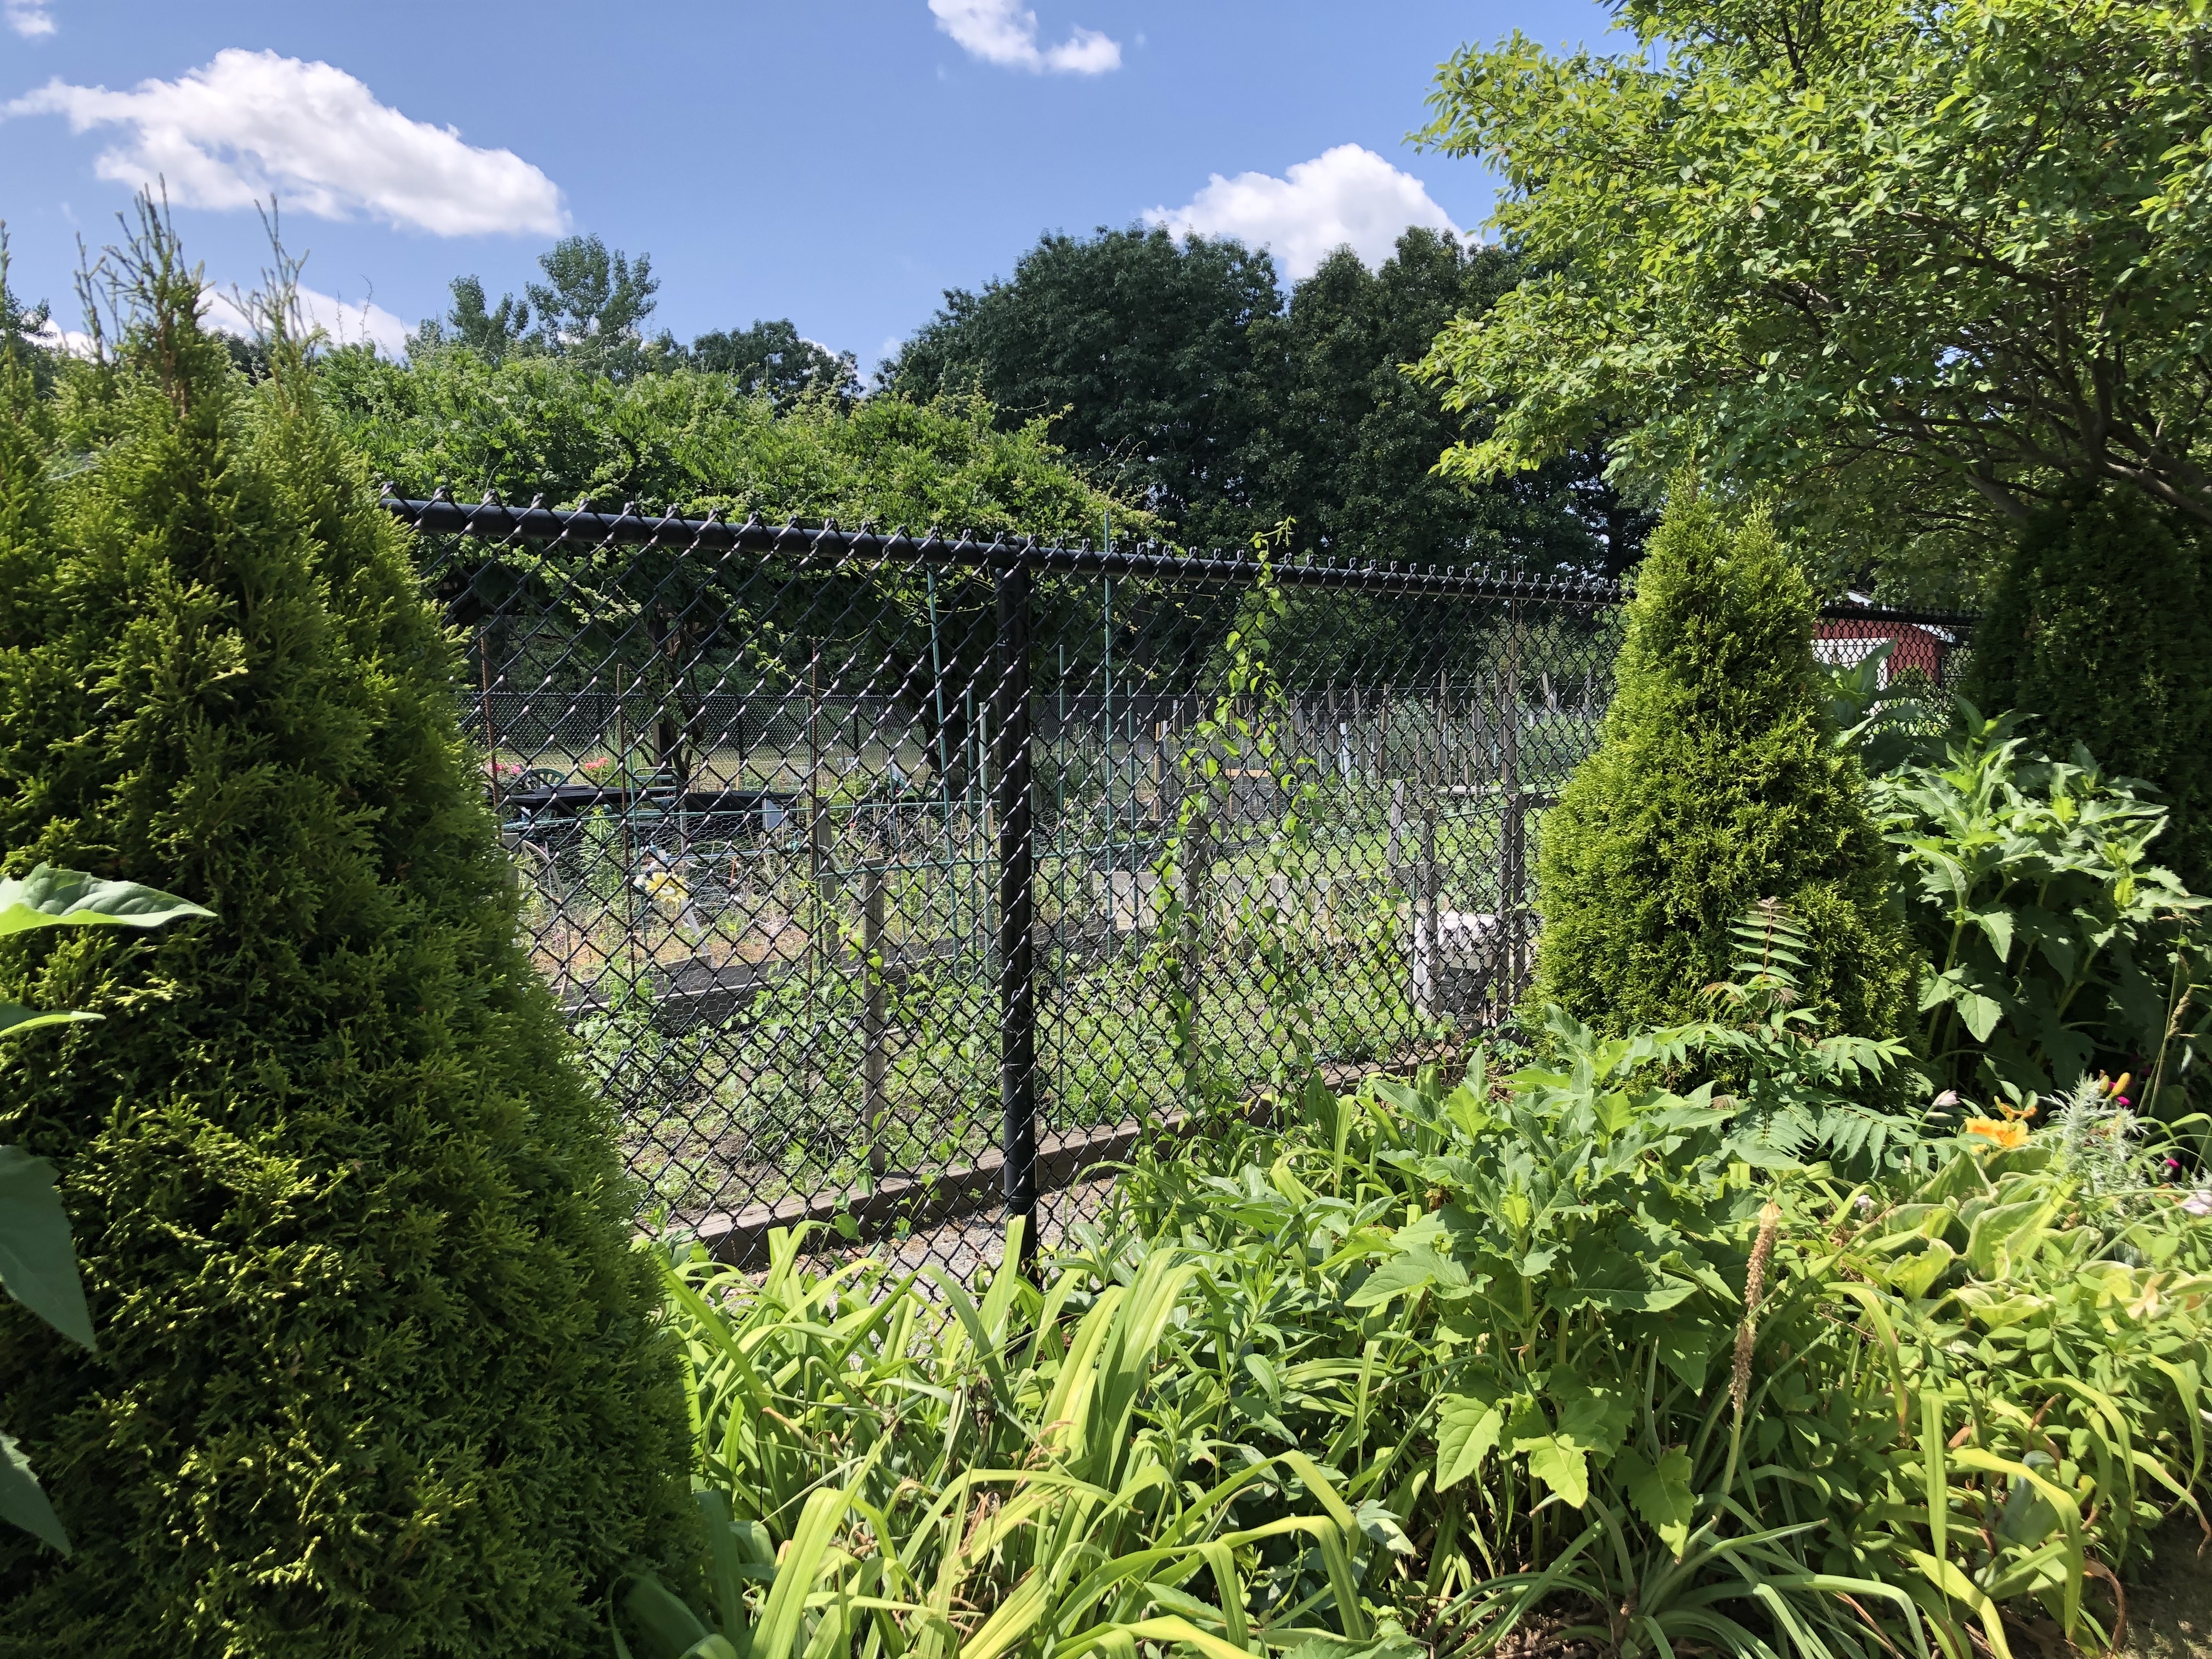 Riverbend Park Community Gardens